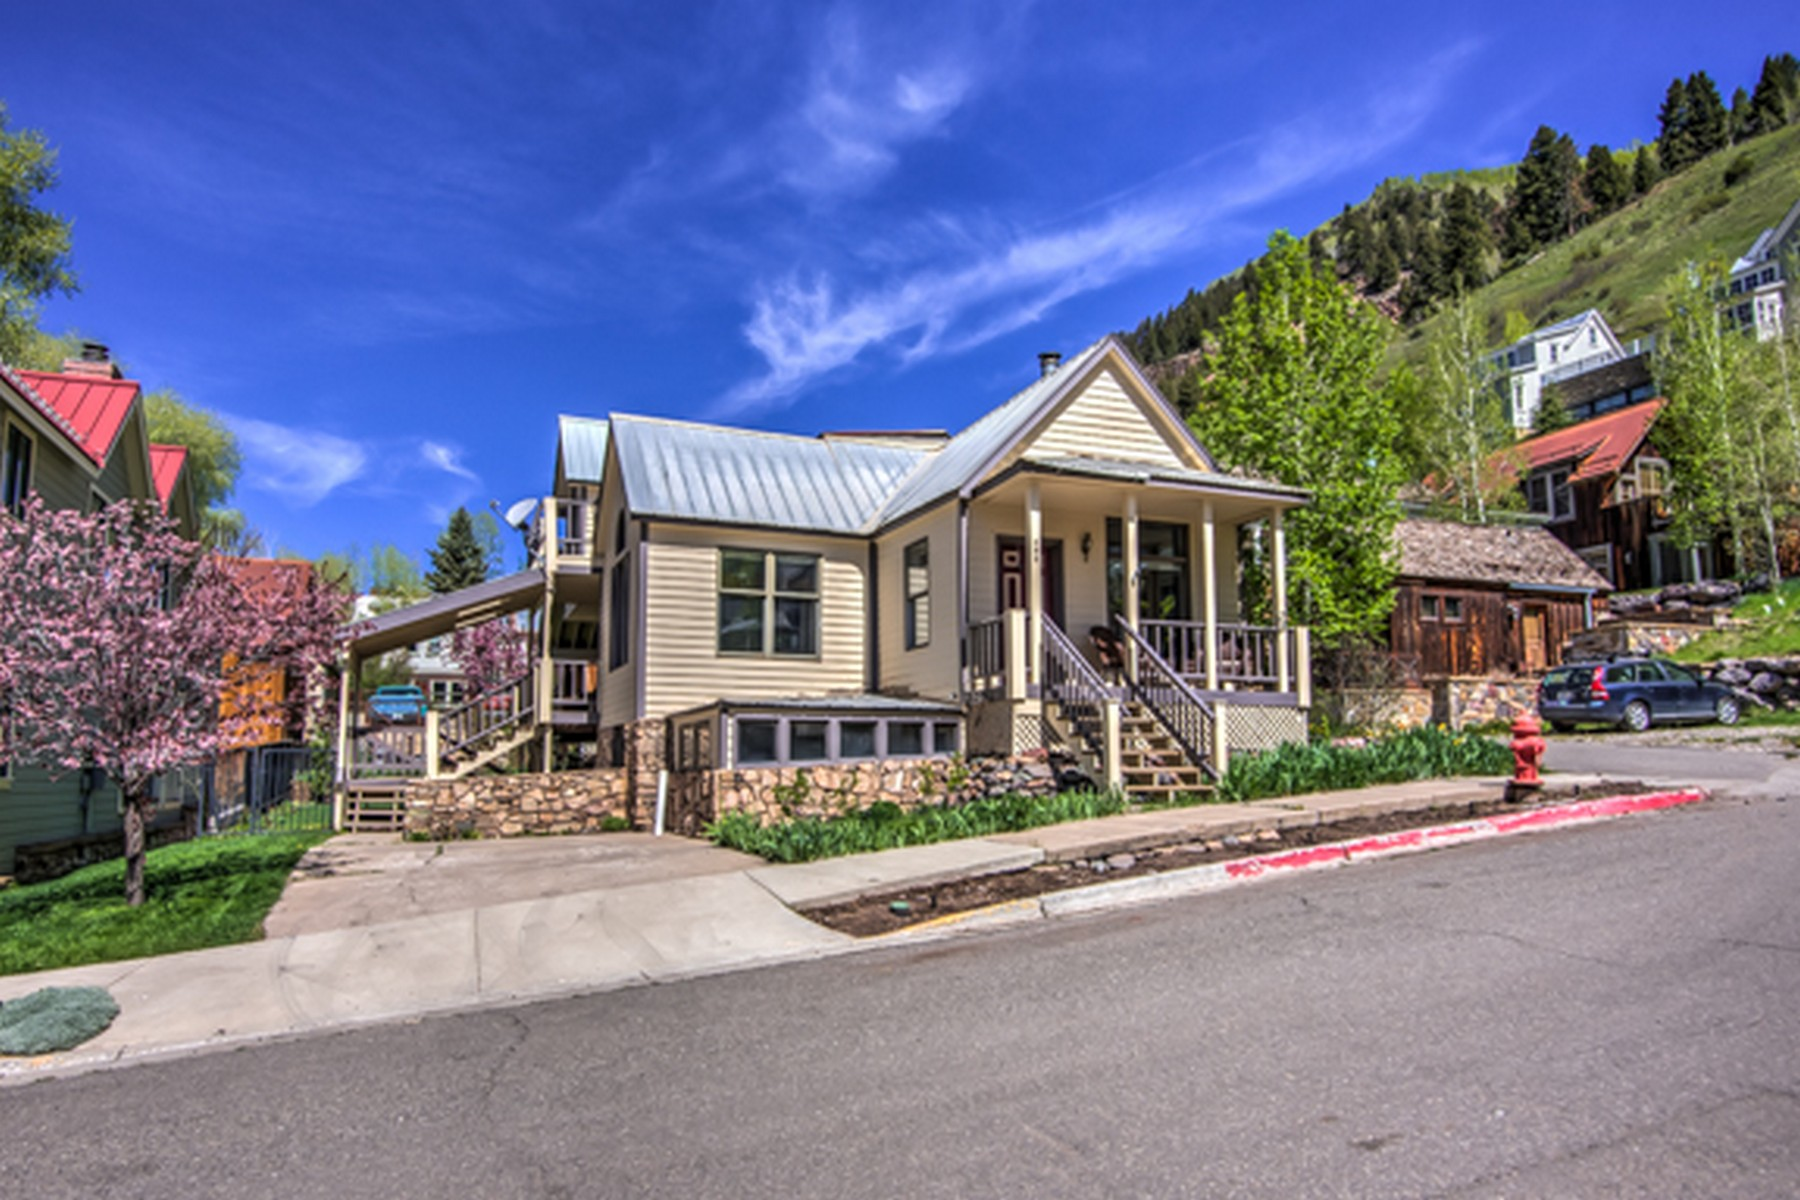 Single Family Home for Sale at 395 North Pine Street Telluride, Colorado, 81435 United States